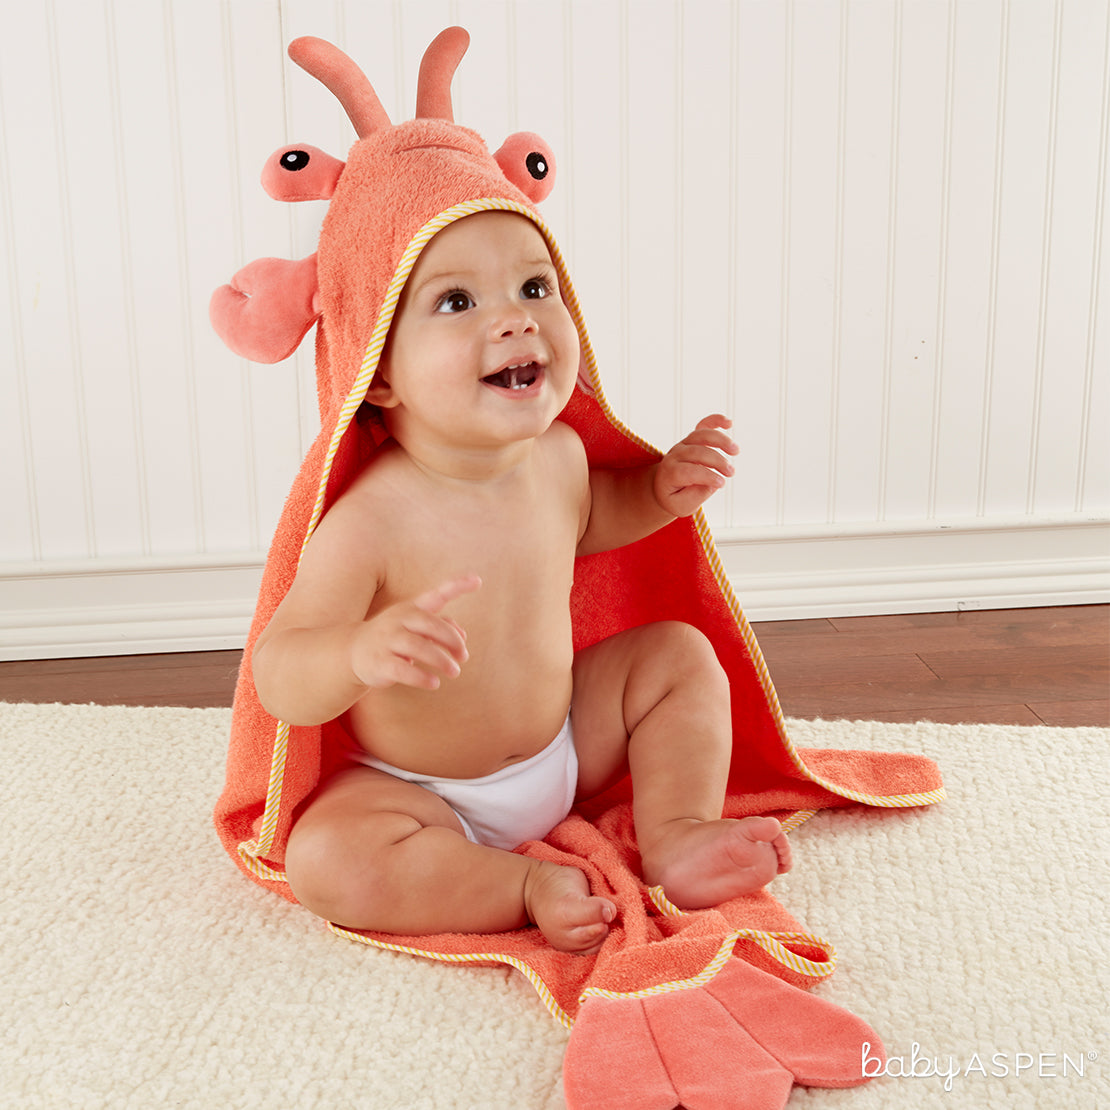 Lobster Hooded Towel | The Cutest Baby Hooded Towels | Baby Aspen